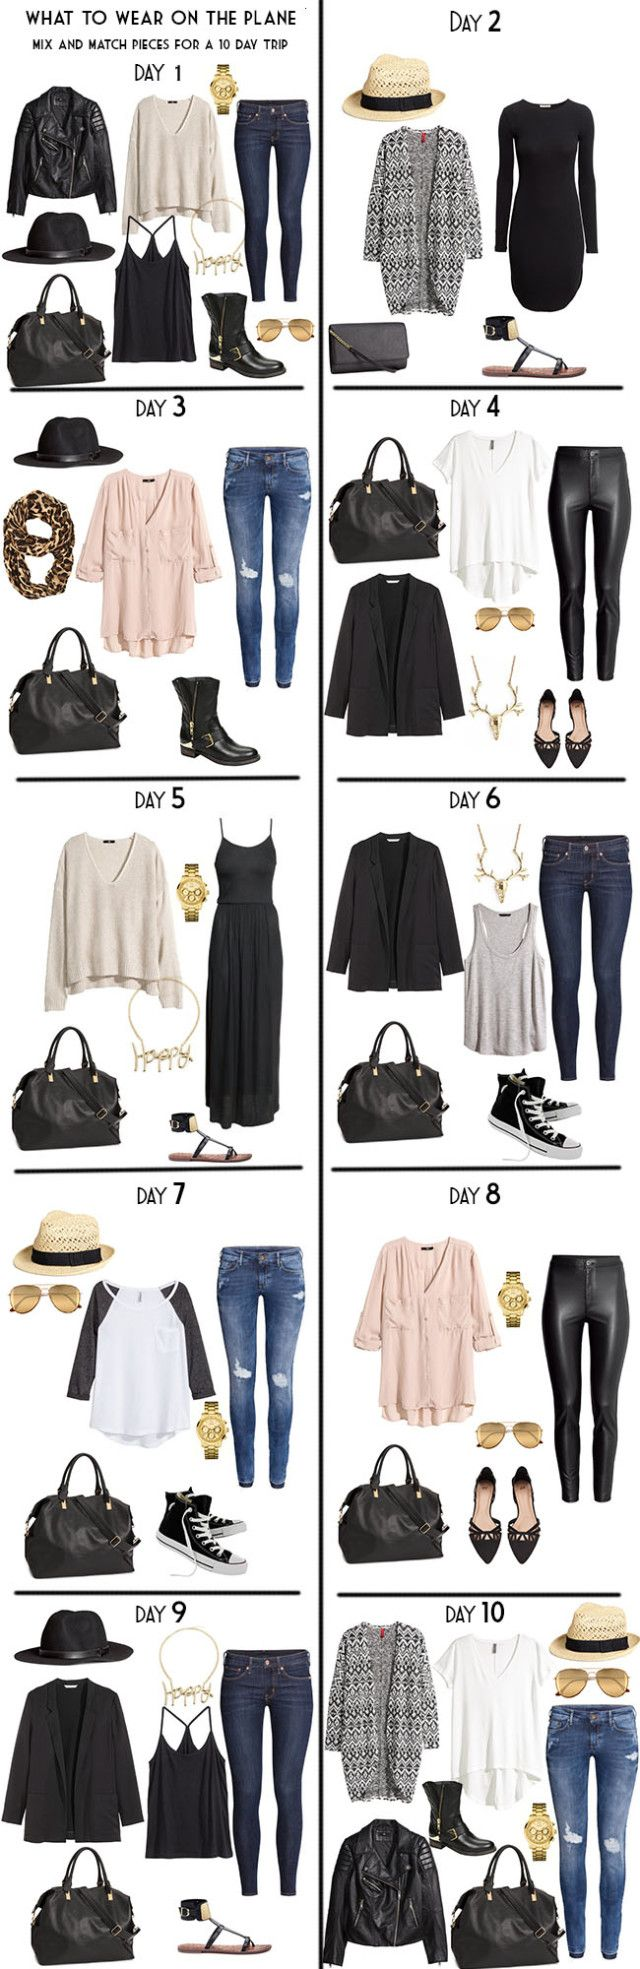 10 Day Packing List 20 pieces in a carry-on for Day wear built from my Capsule wardrobe. #packinglist #travellight #capsule